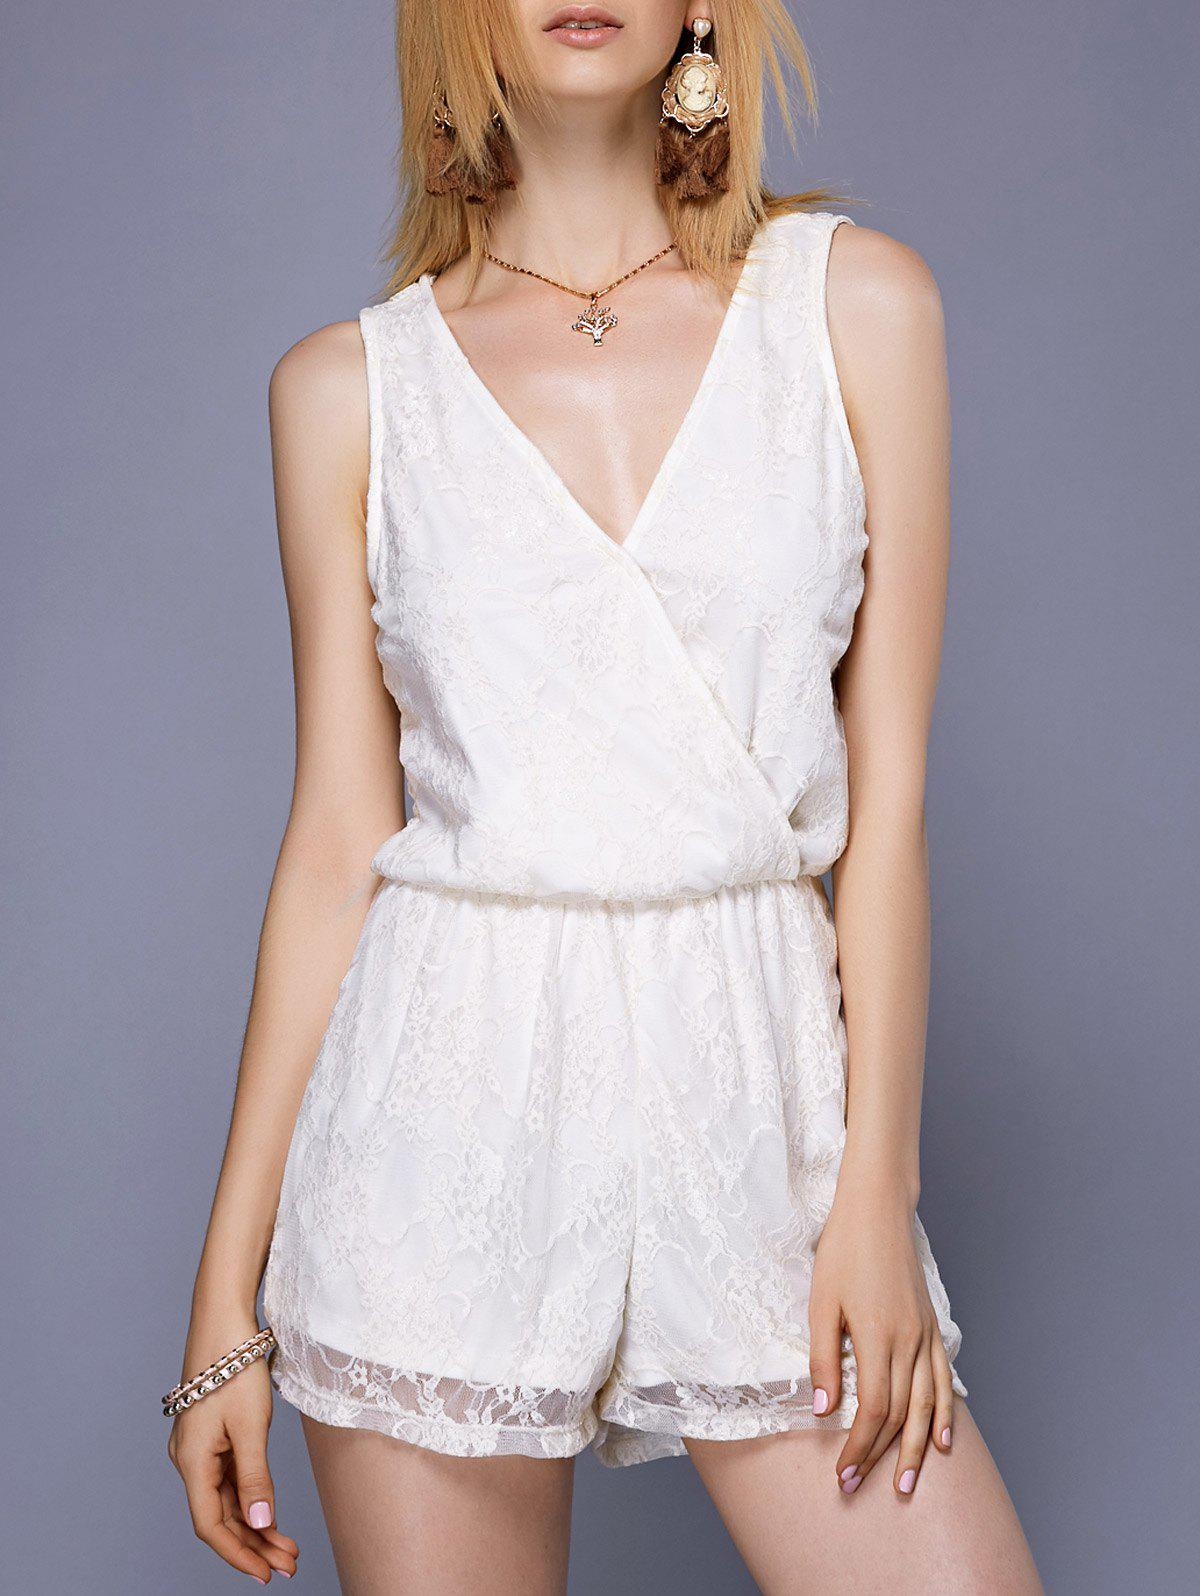 Femmes Élégant  's V-Neck See-Through Romper Lace - Blanc ONE SIZE(FIT SIZE XS TO M)